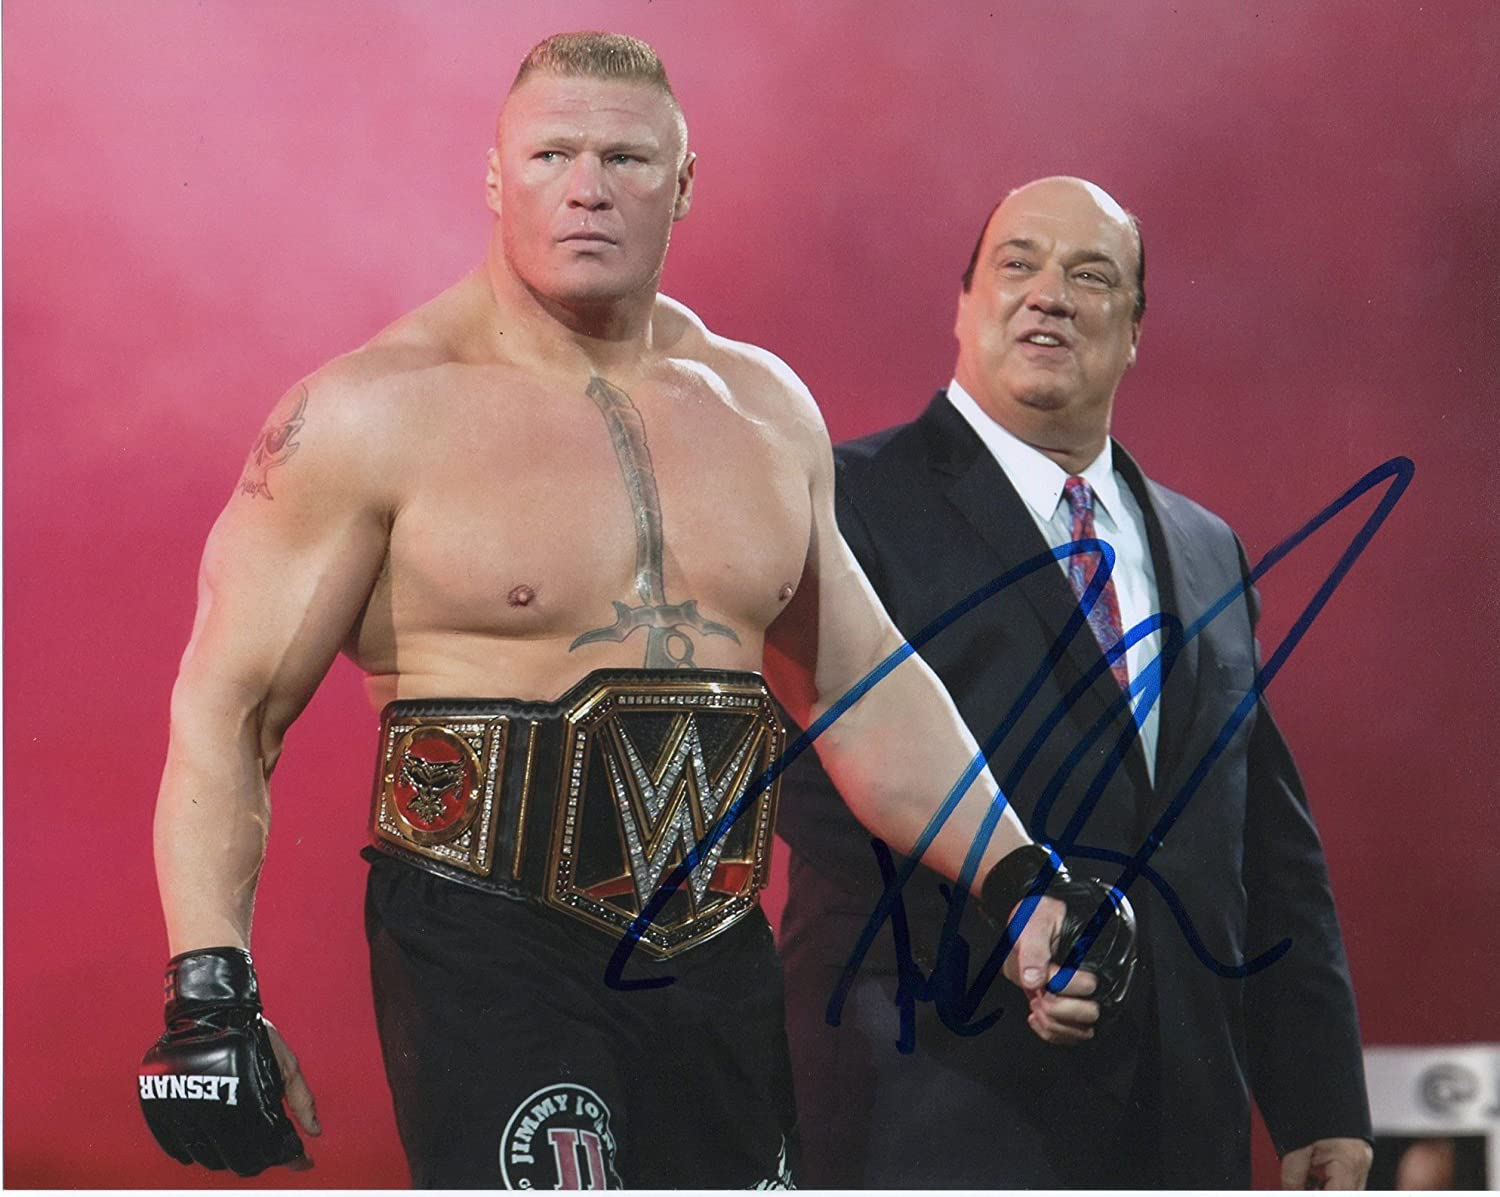 Paul Heyman Autographed 8x10 photograph WWE Raw Superstar Manager Advocate